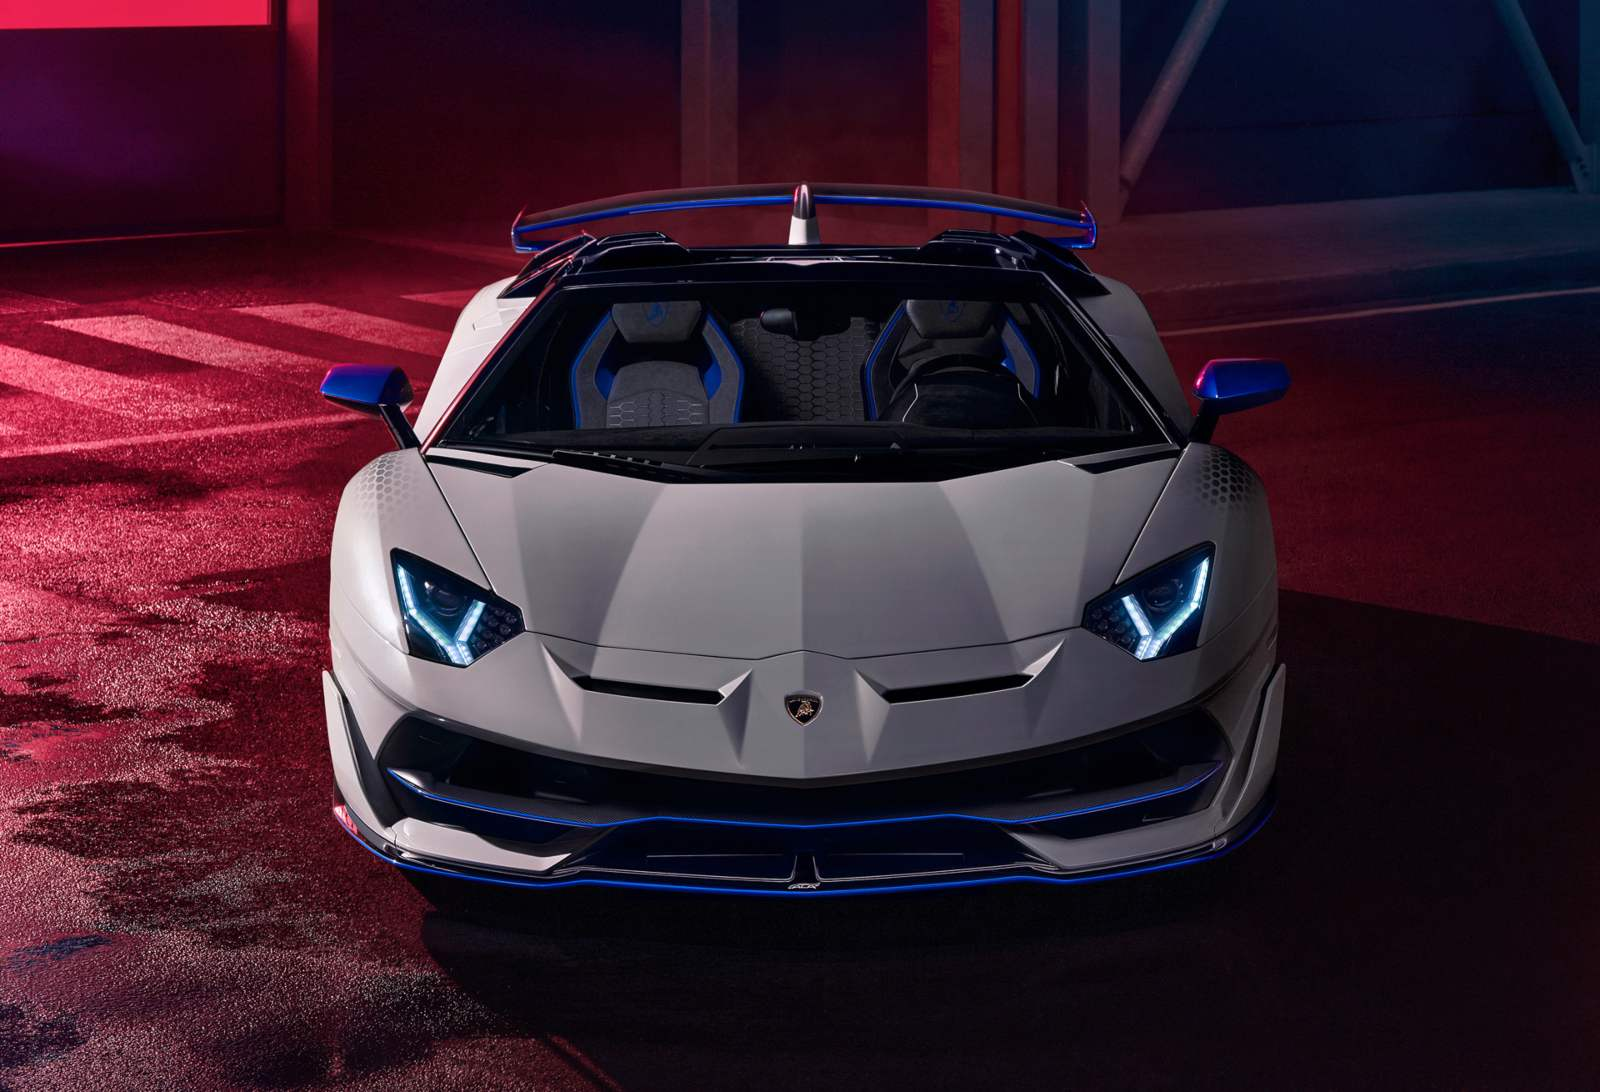 Lamborghini Cars News, Launches, Reviews From India - Motoroids